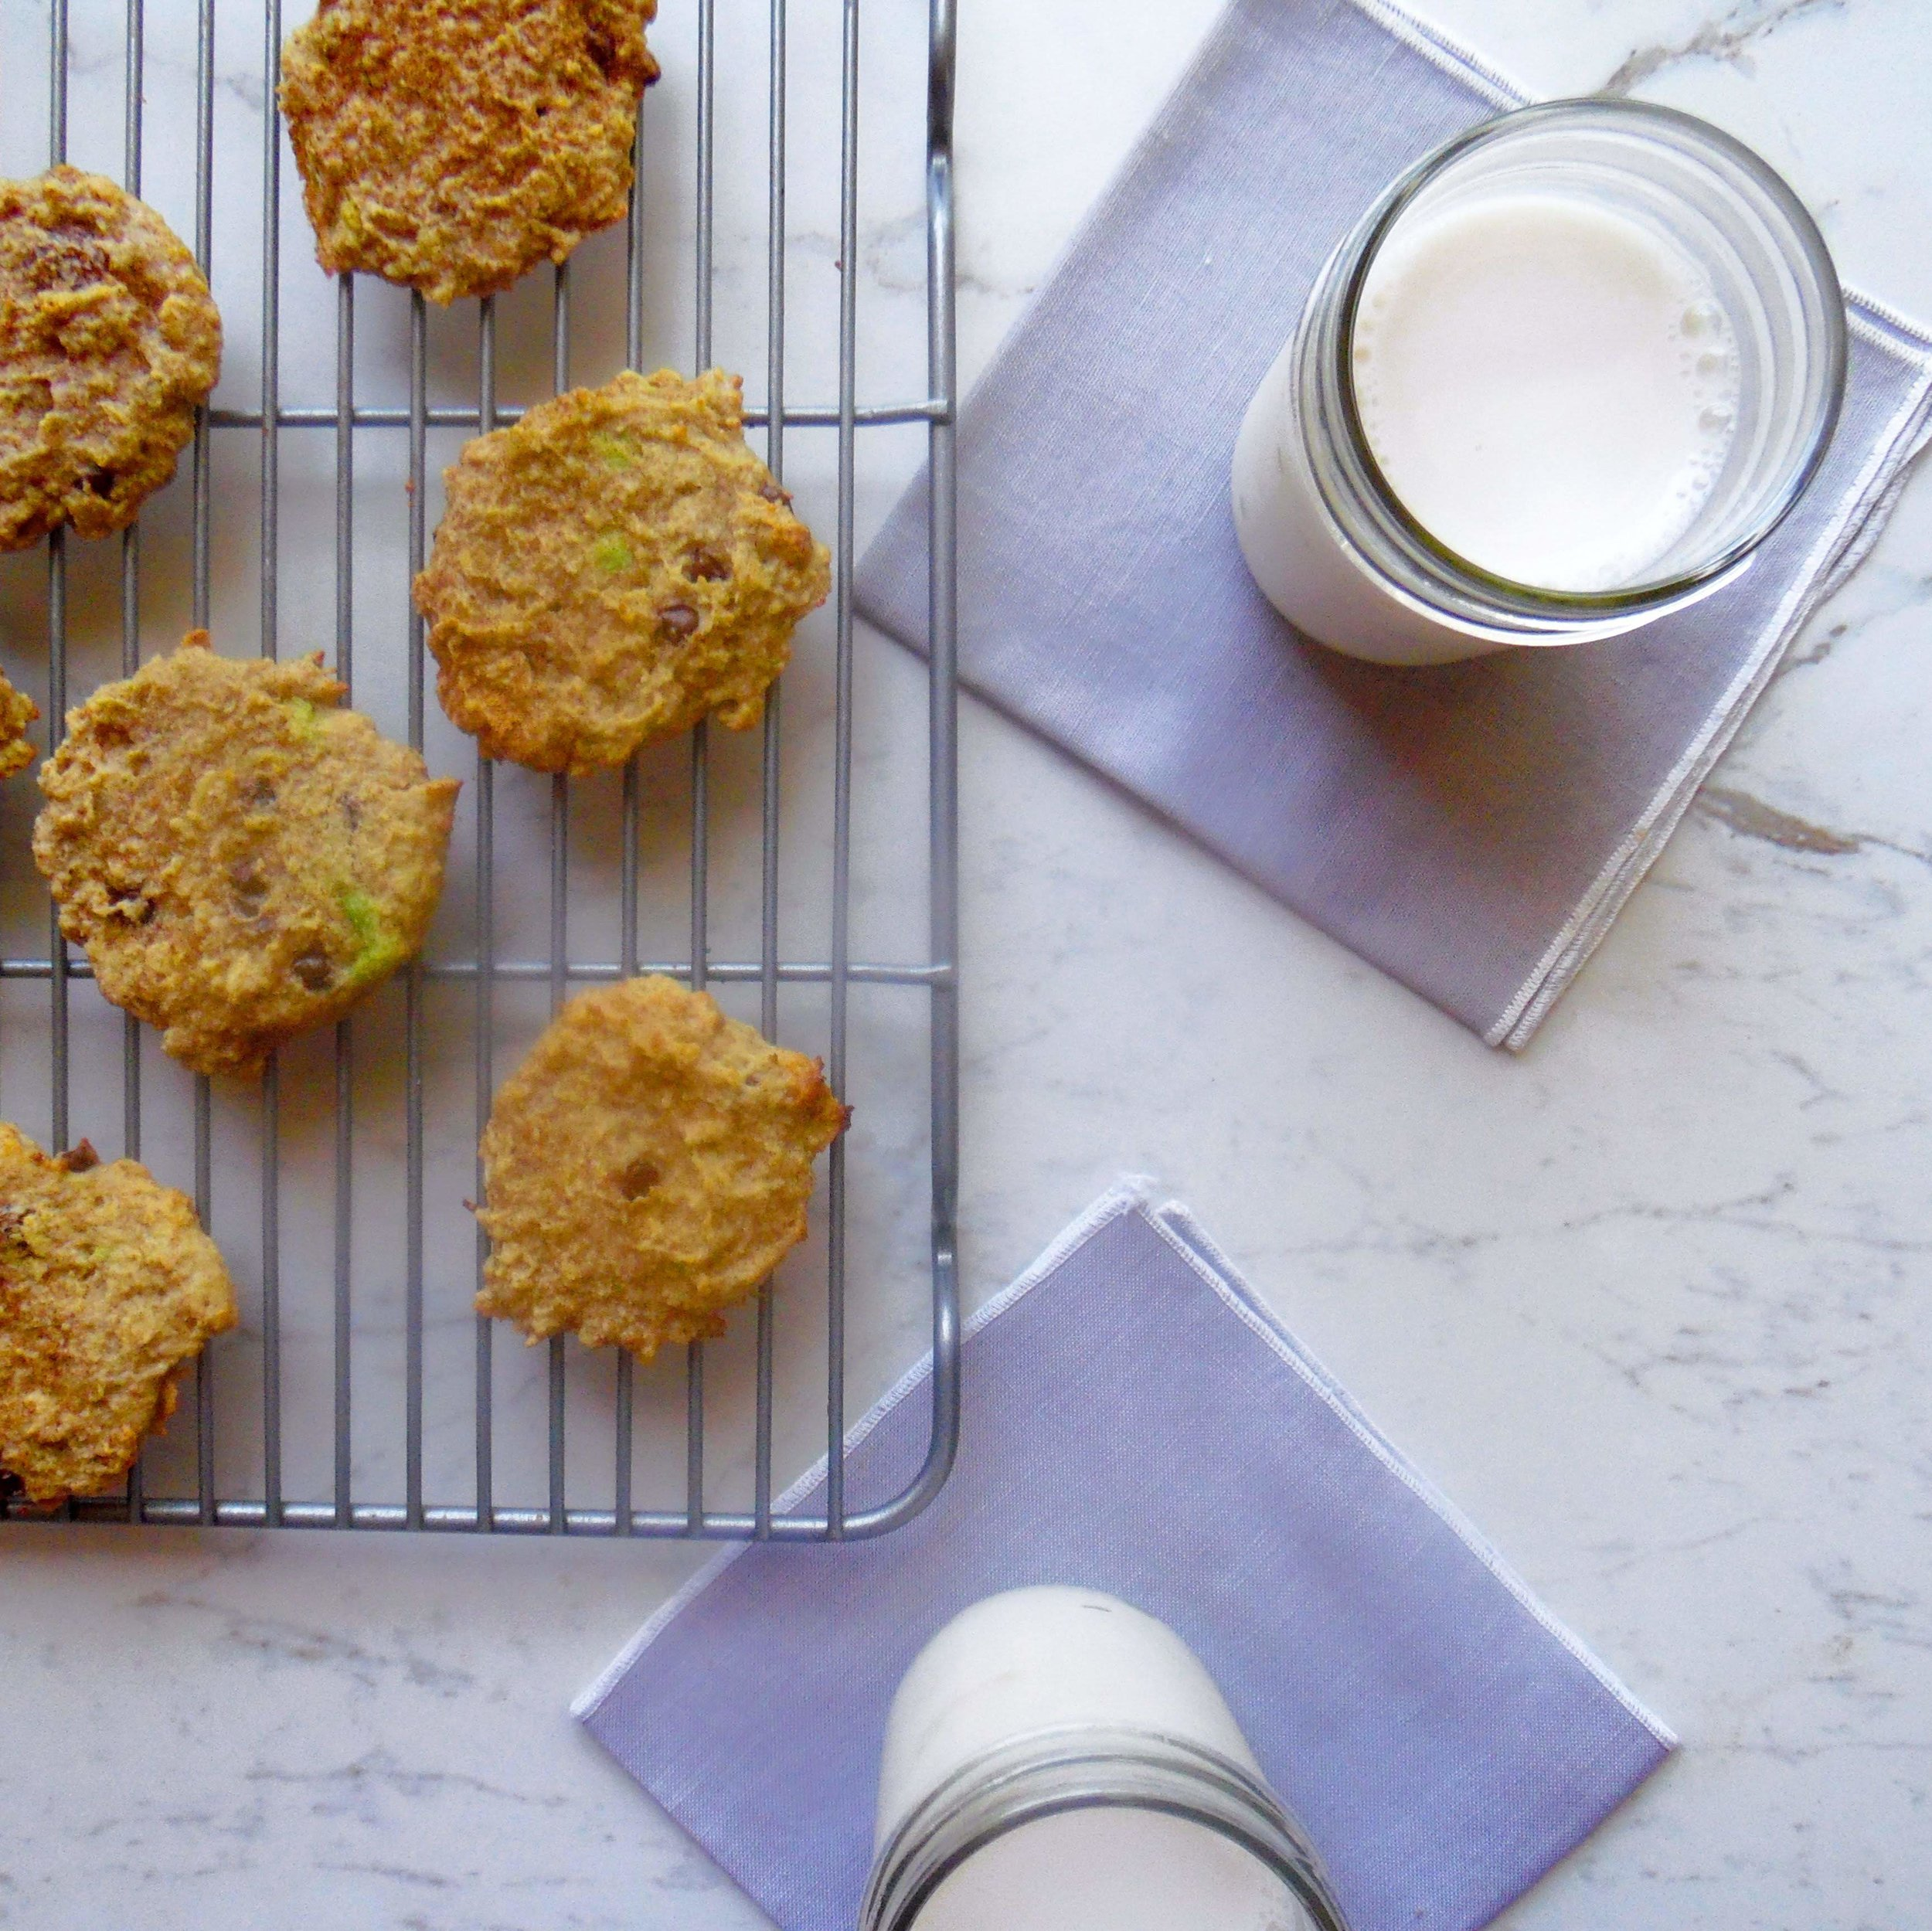 Cookies that met the sugar need with none of the guilt. These healthy babies are yummy and gluten and dairy free.